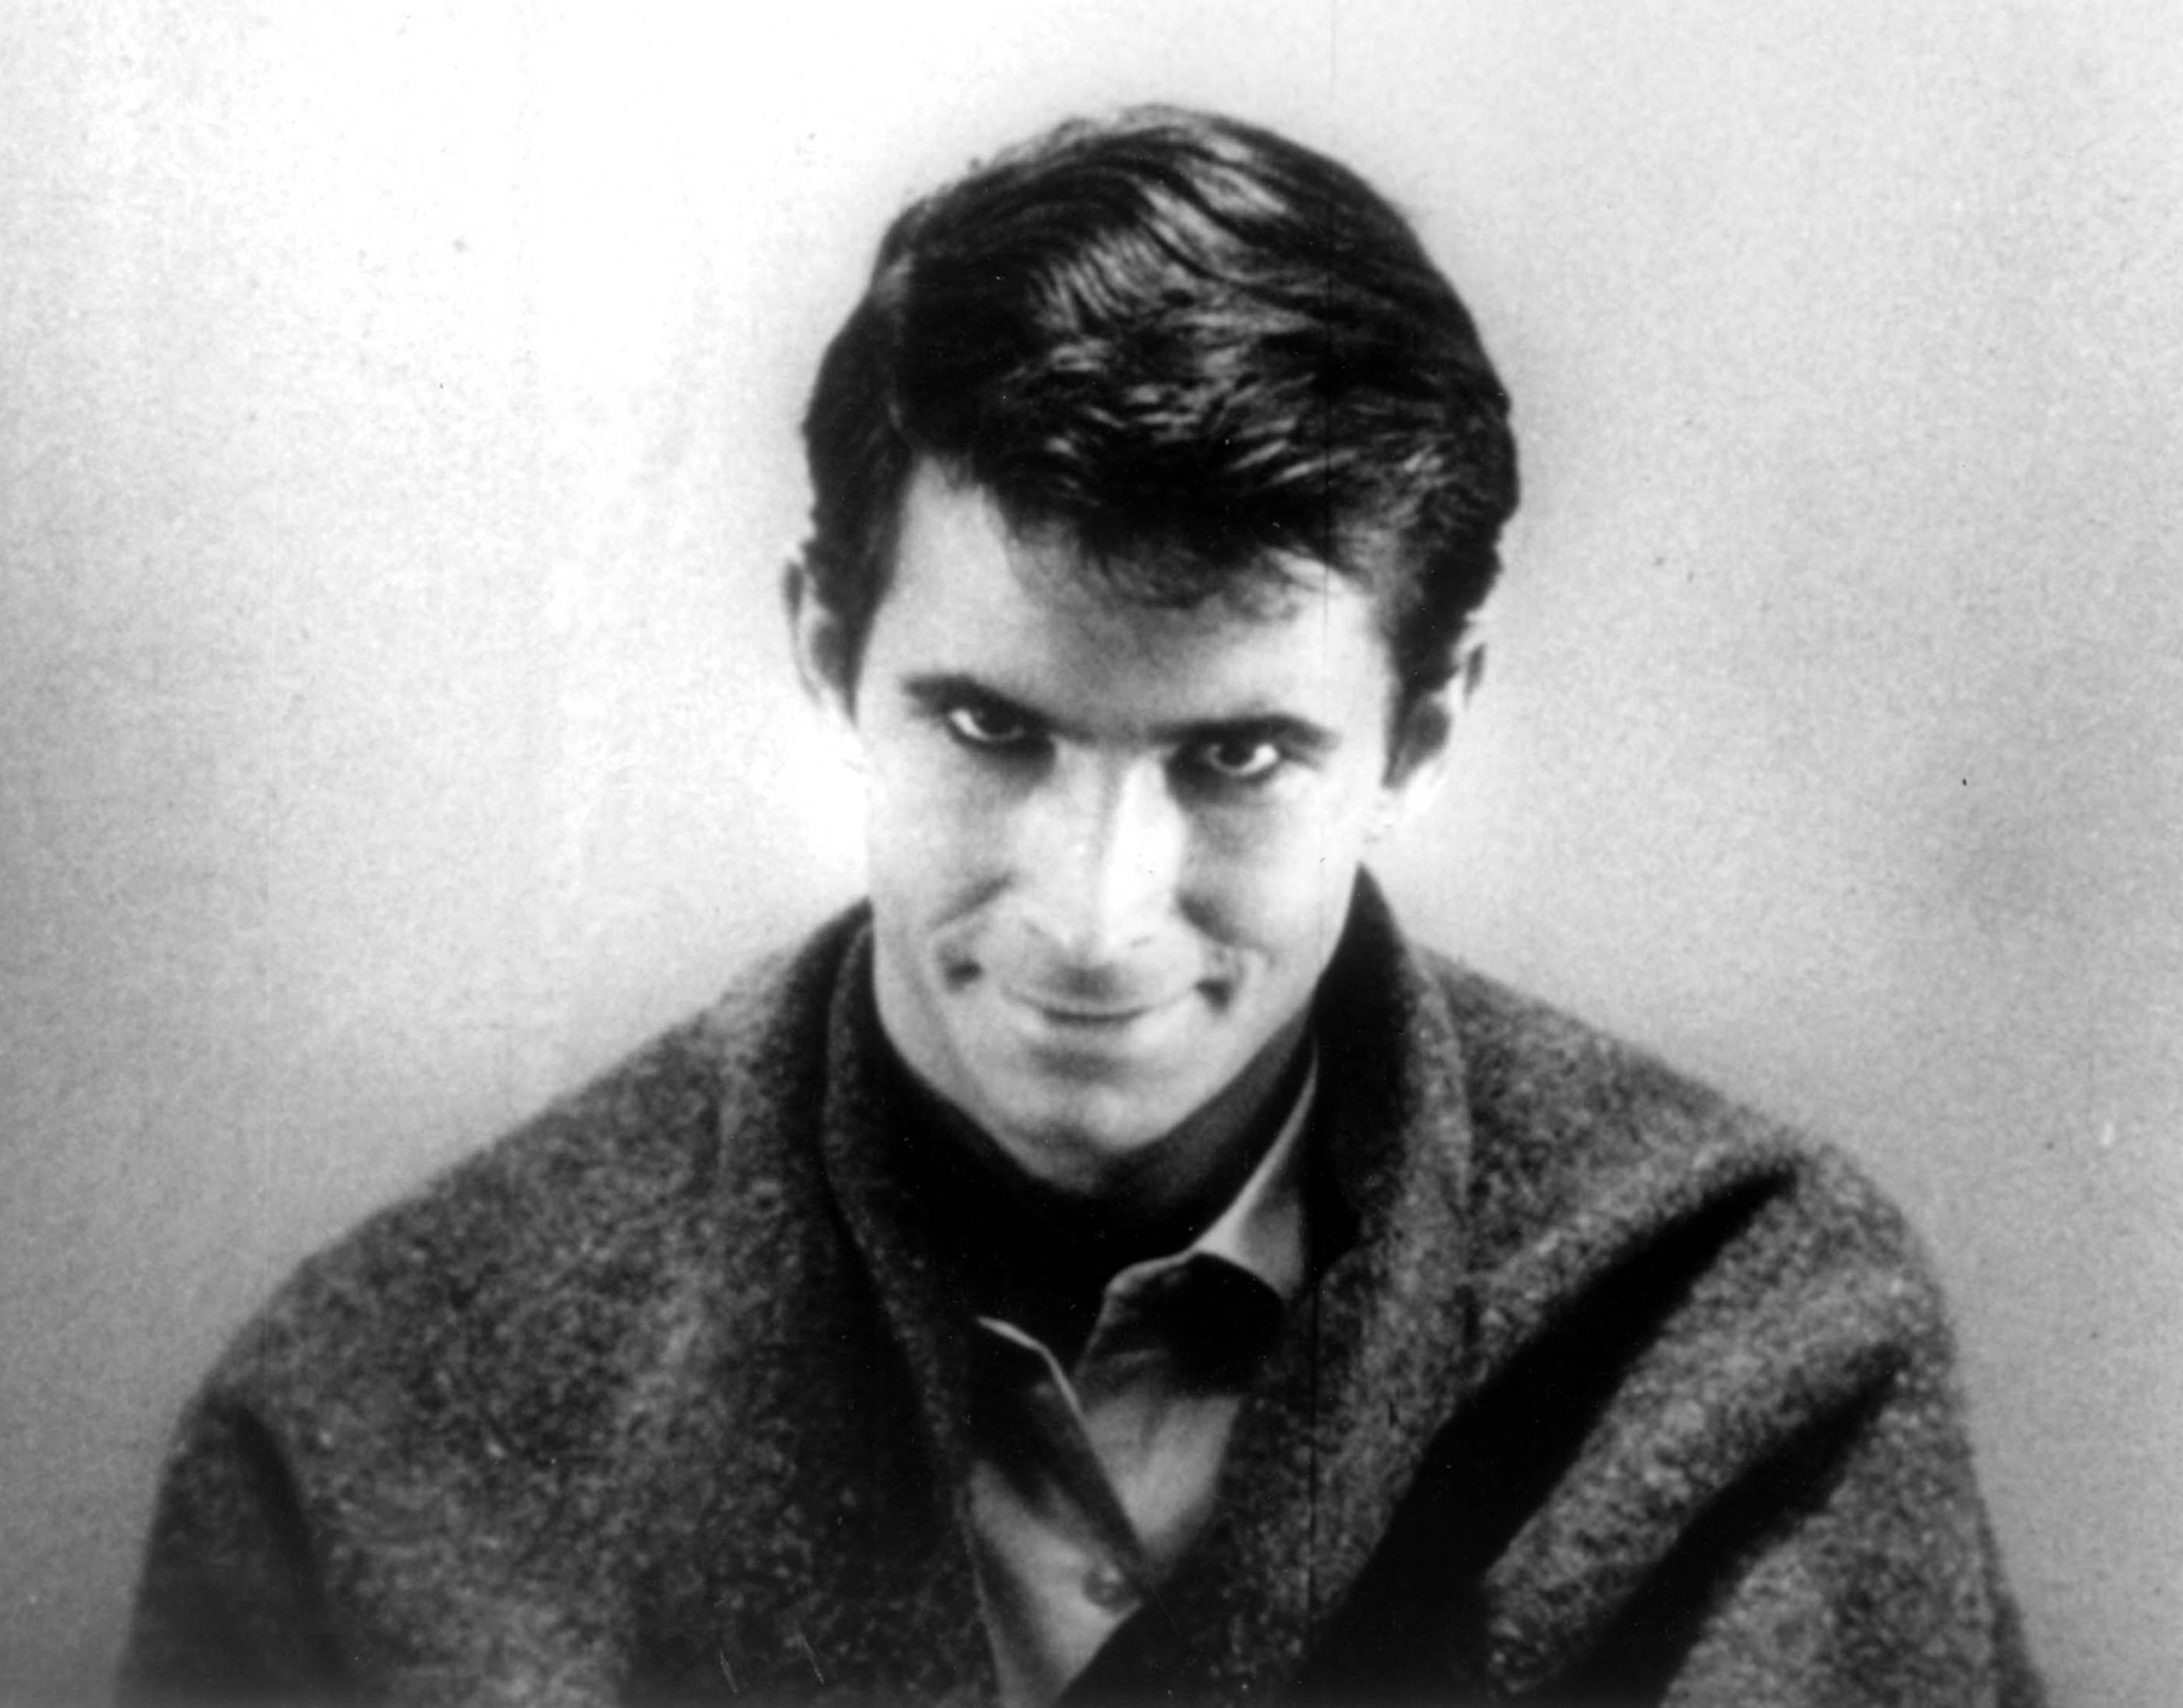 PSYCHO [US 1960] Directed by Alfred Hitchcock   ANTHONY PERKINS as Norman Bates PSYCHO [US 1960]  Directed by Alfred Hitchcoc